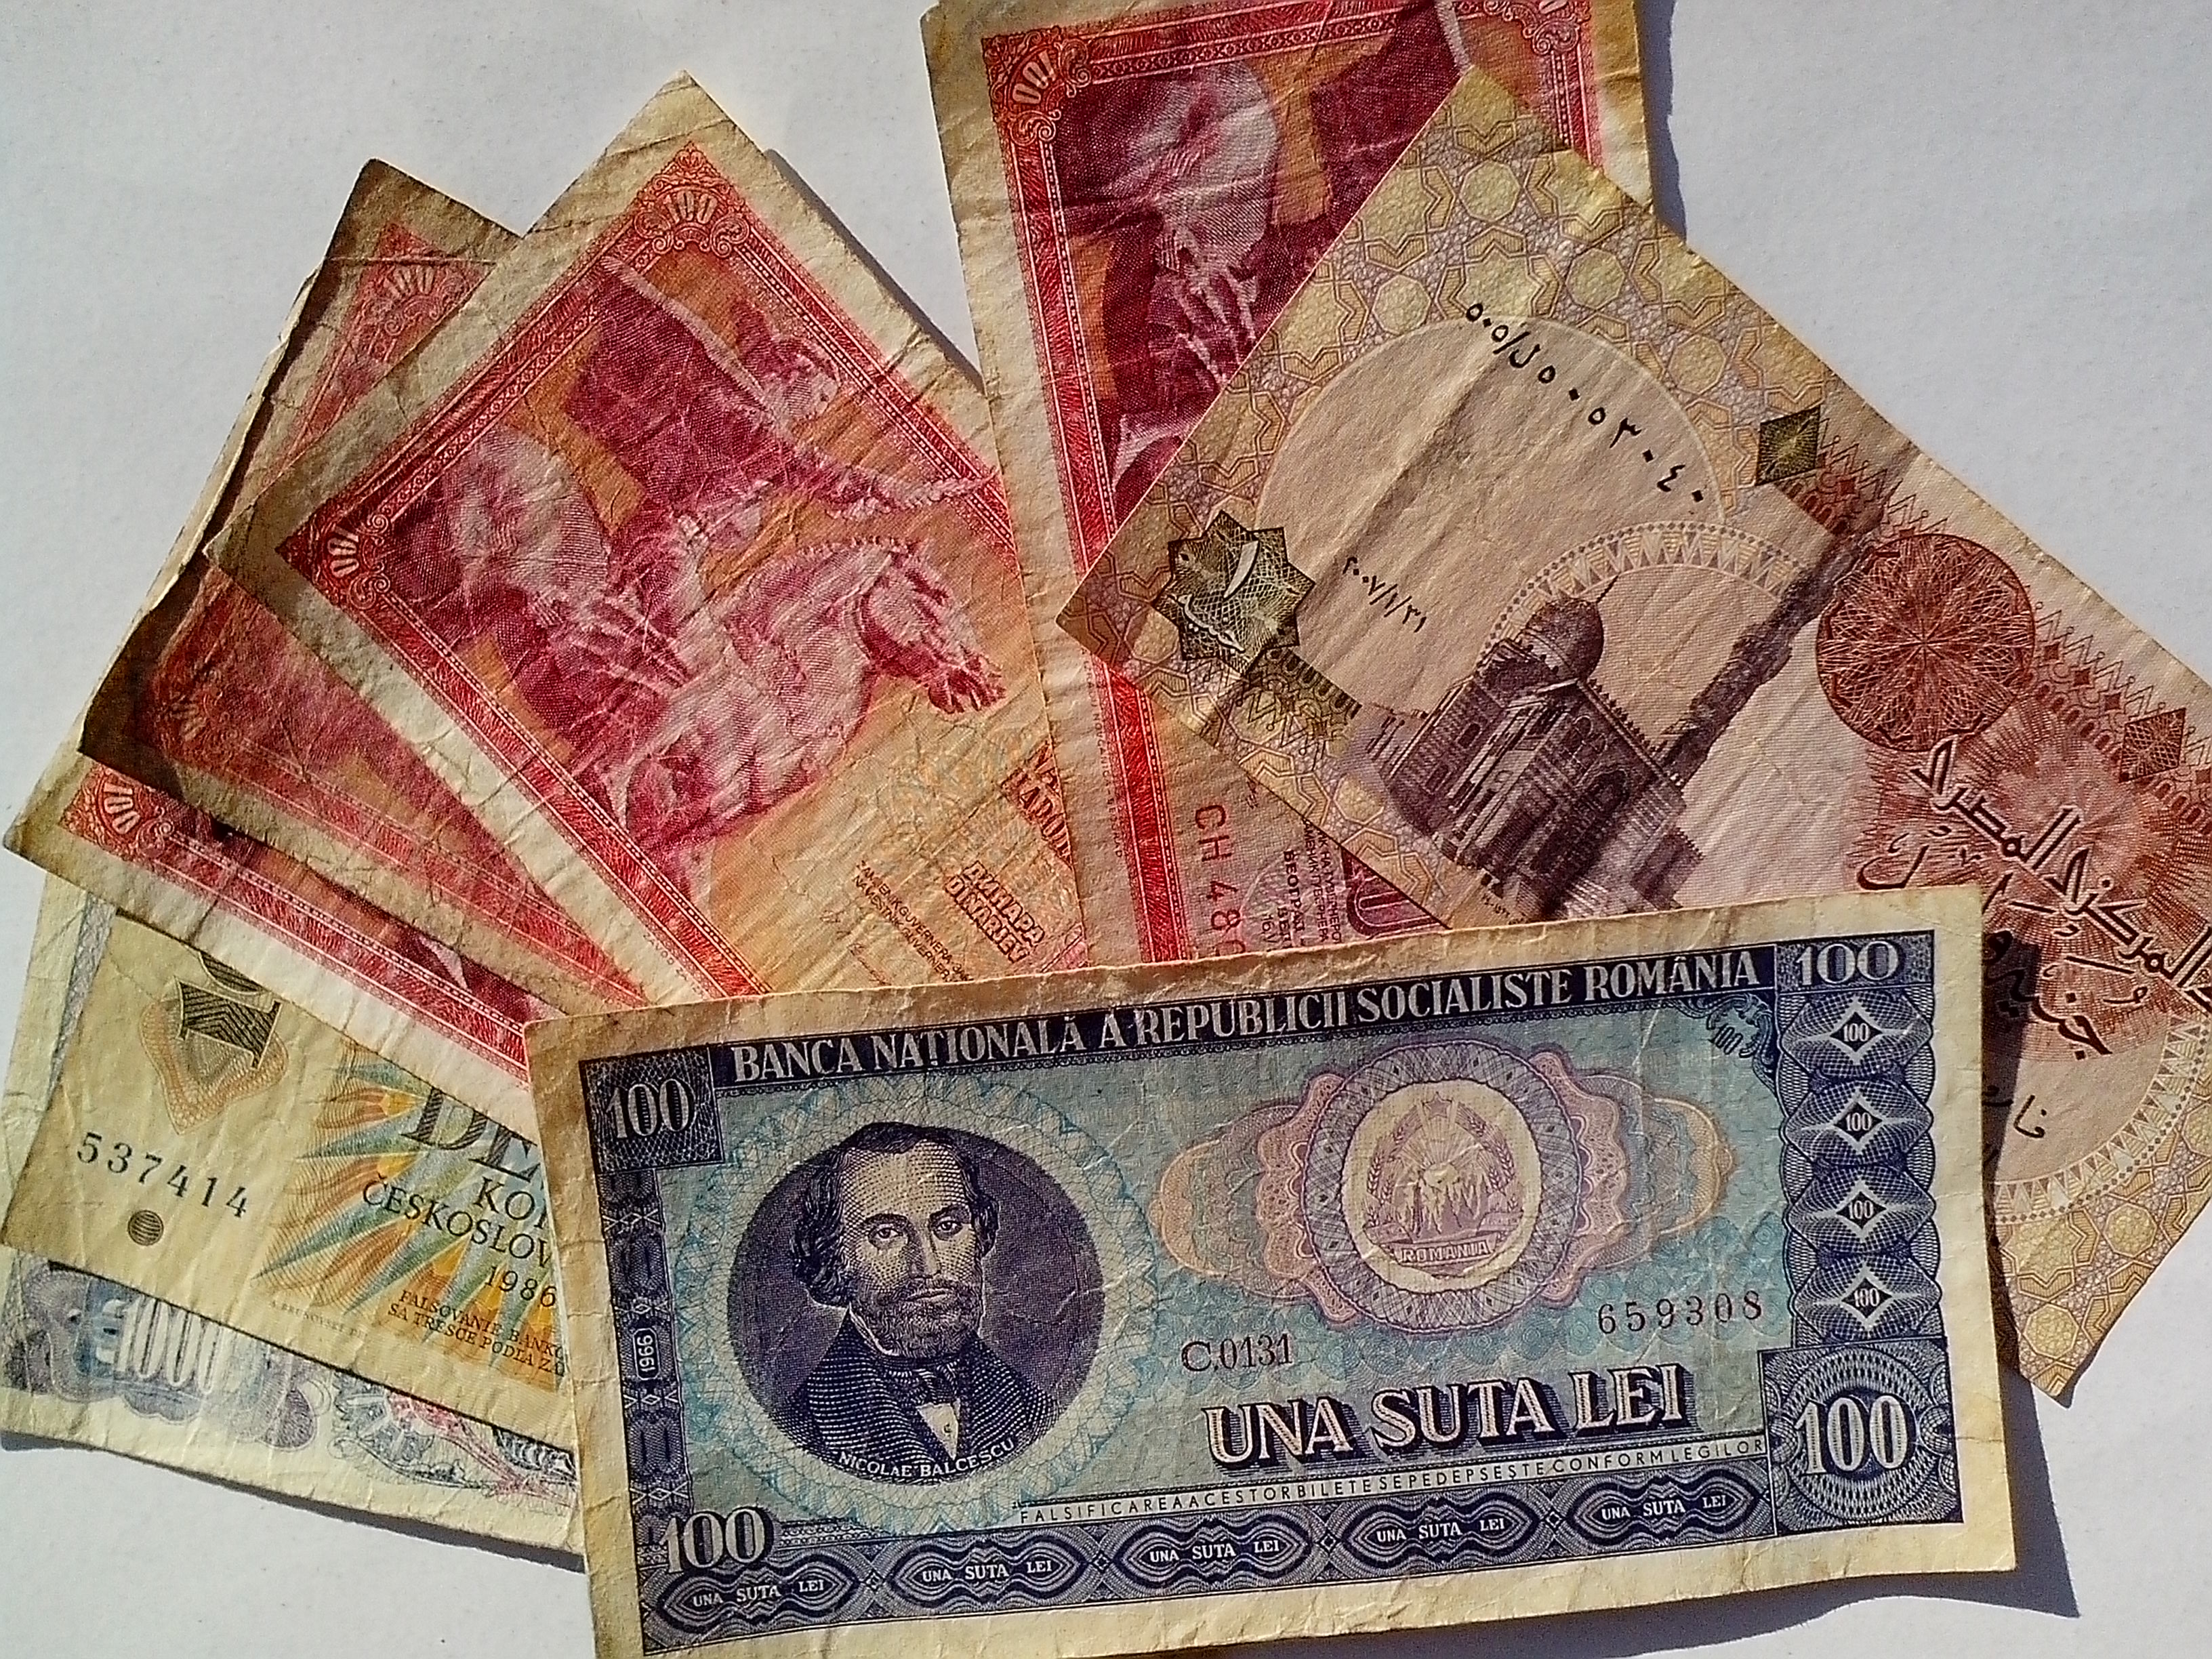 Free photograph; yugosalvia, Serbia, Hungary, money, banknotes, old, cash, bills, currency